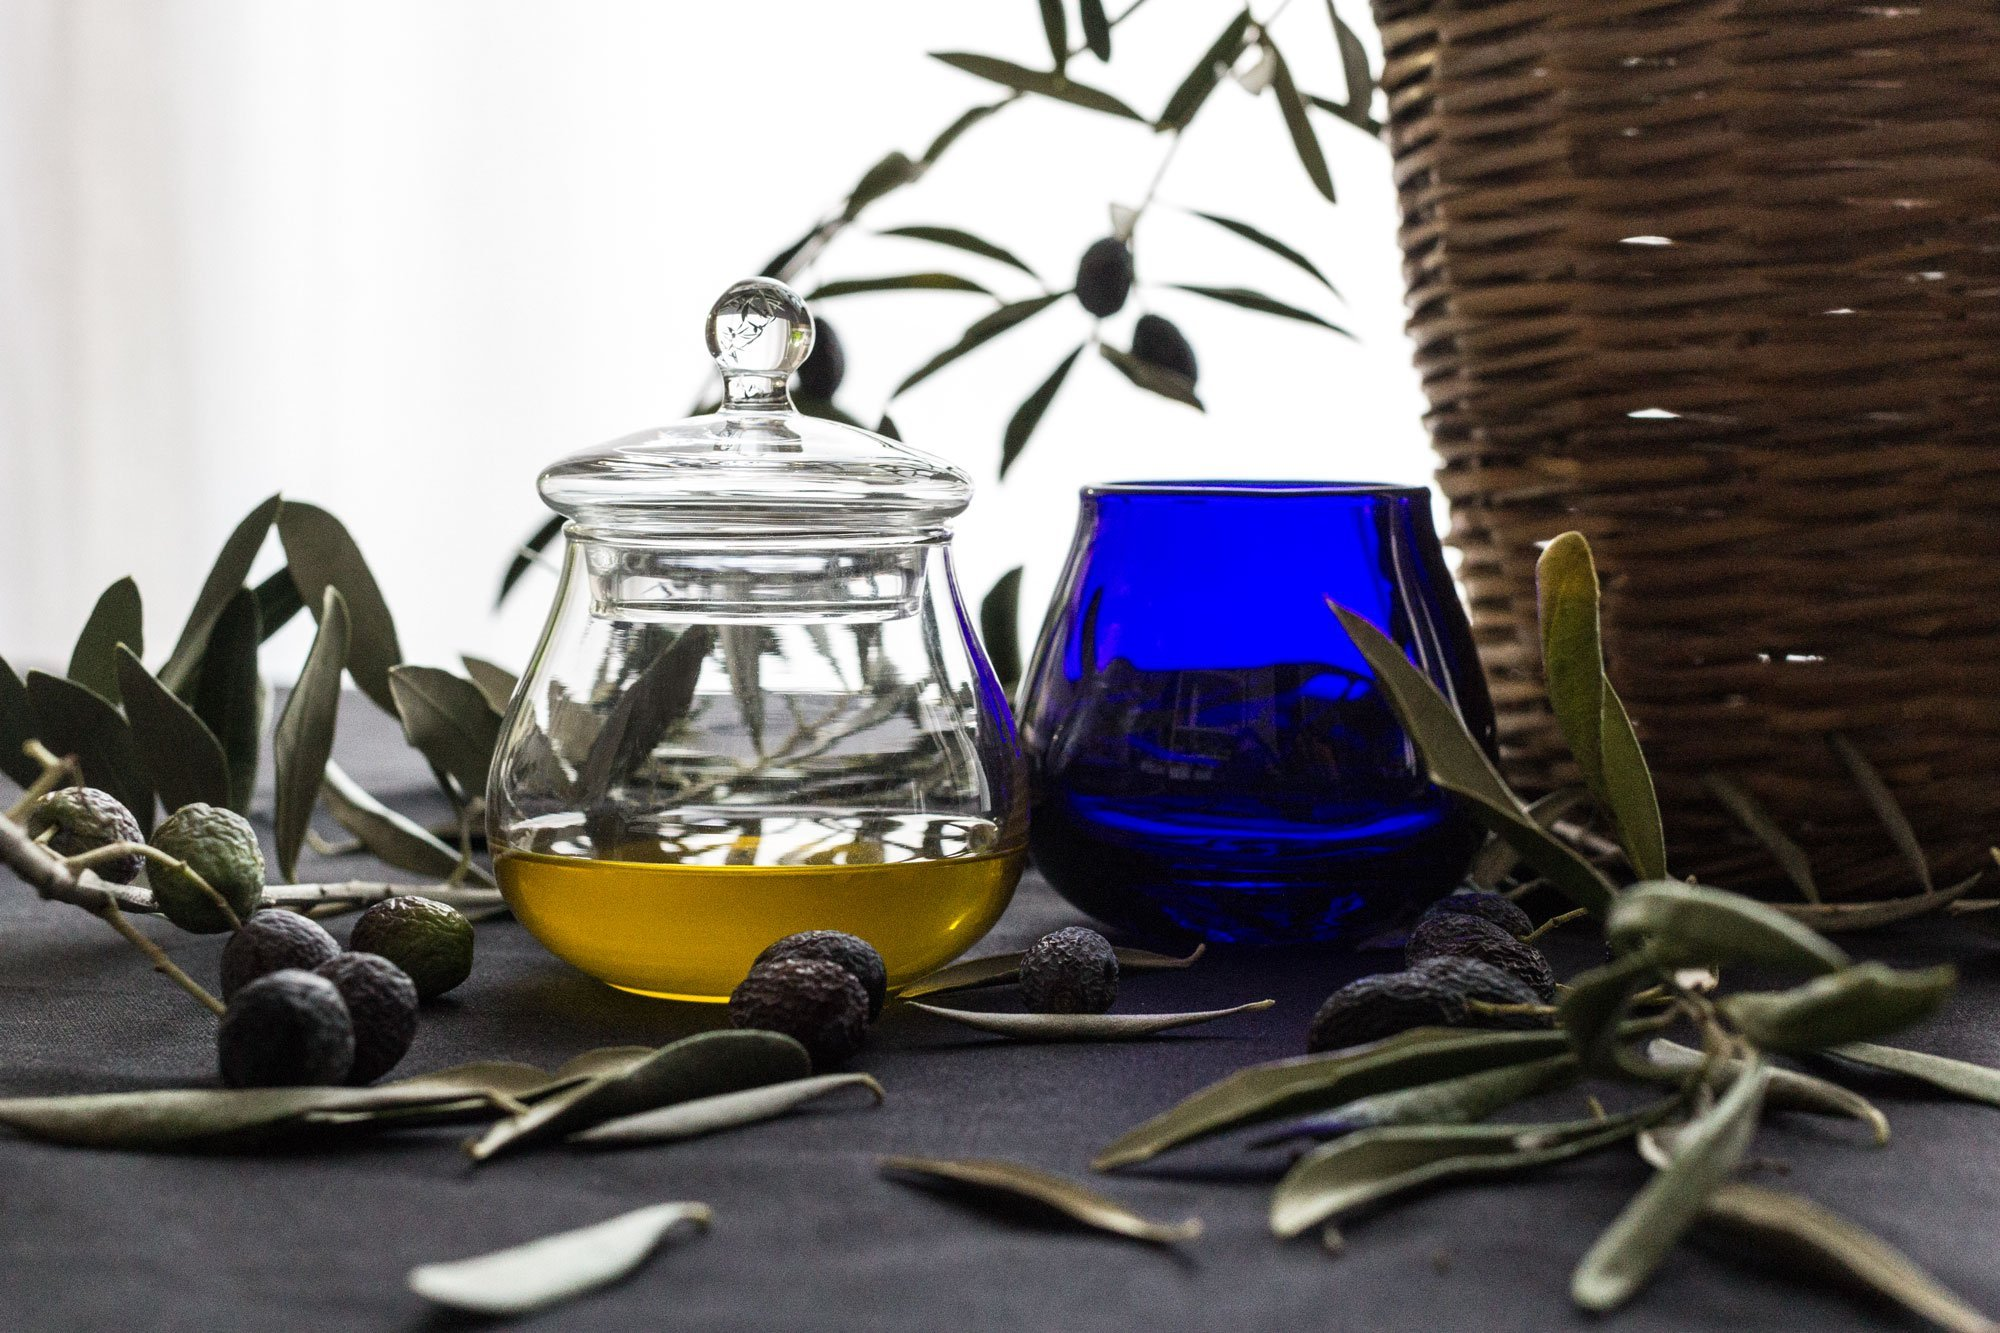 olive-oil-tasting-glass-with-lid-920457_1024x1024@2x